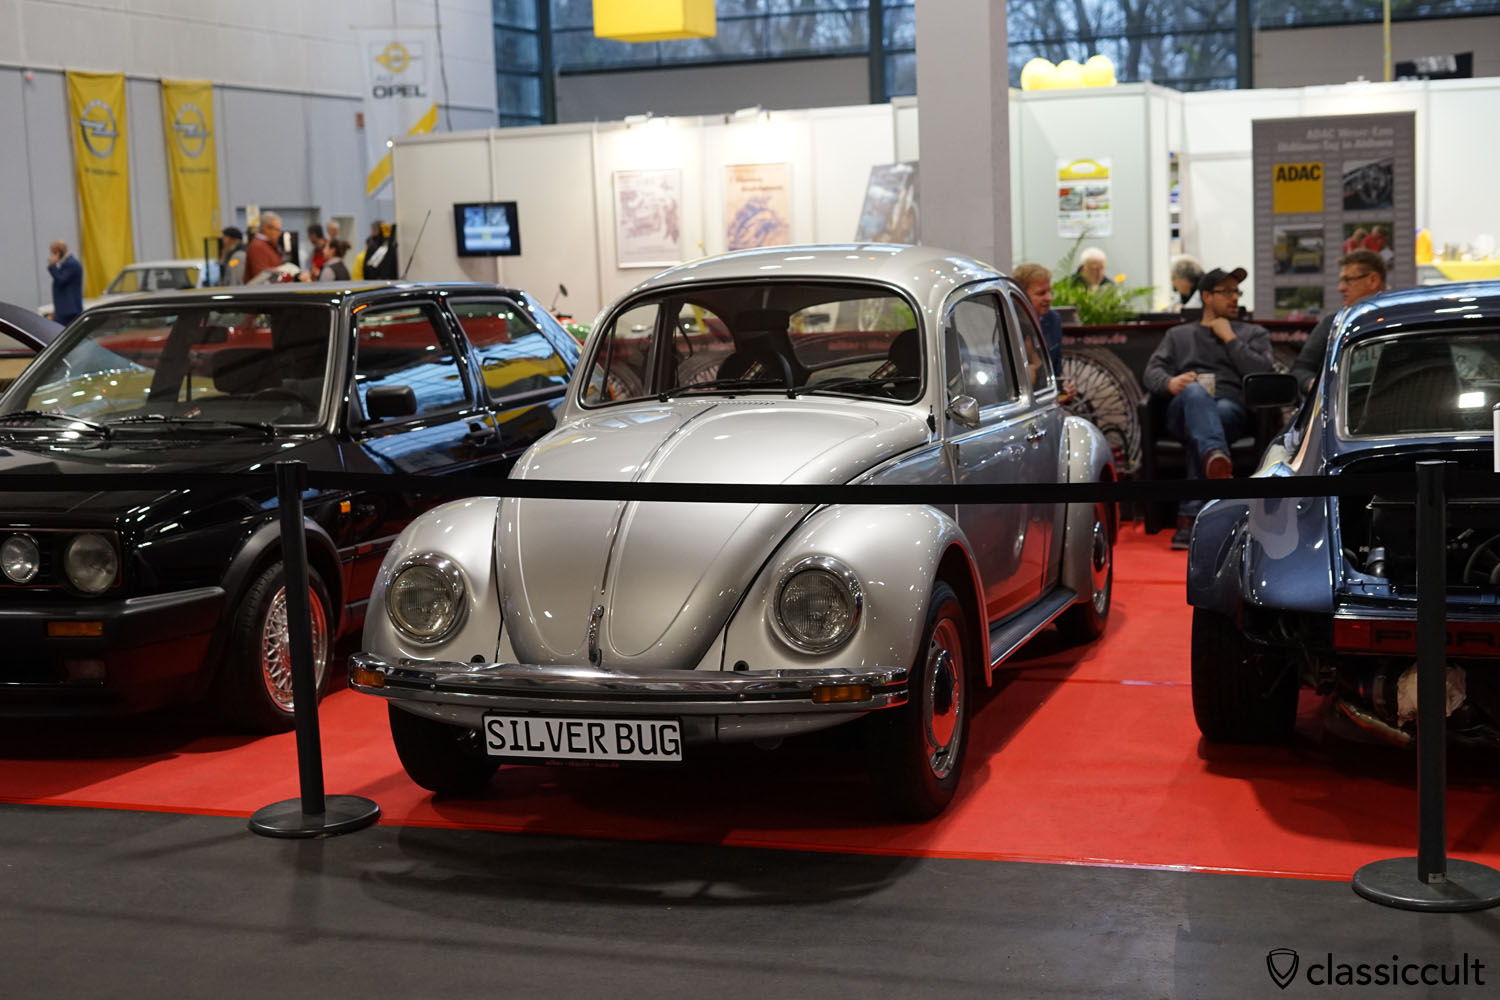 VW Beetle Silver Bug Special Edition